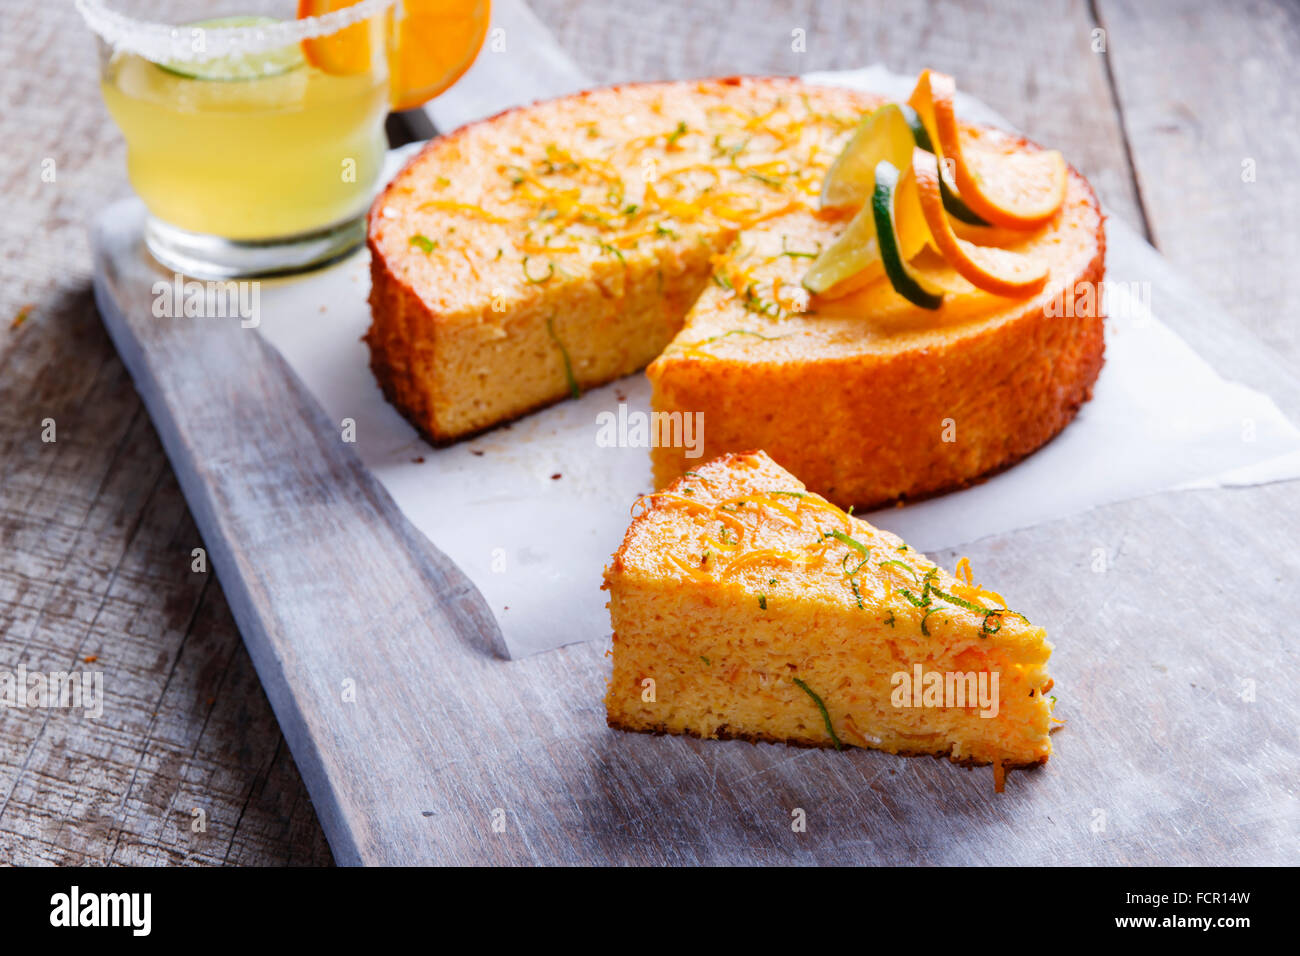 Home made whole testy orange cake on a wooden surface - Stock Image